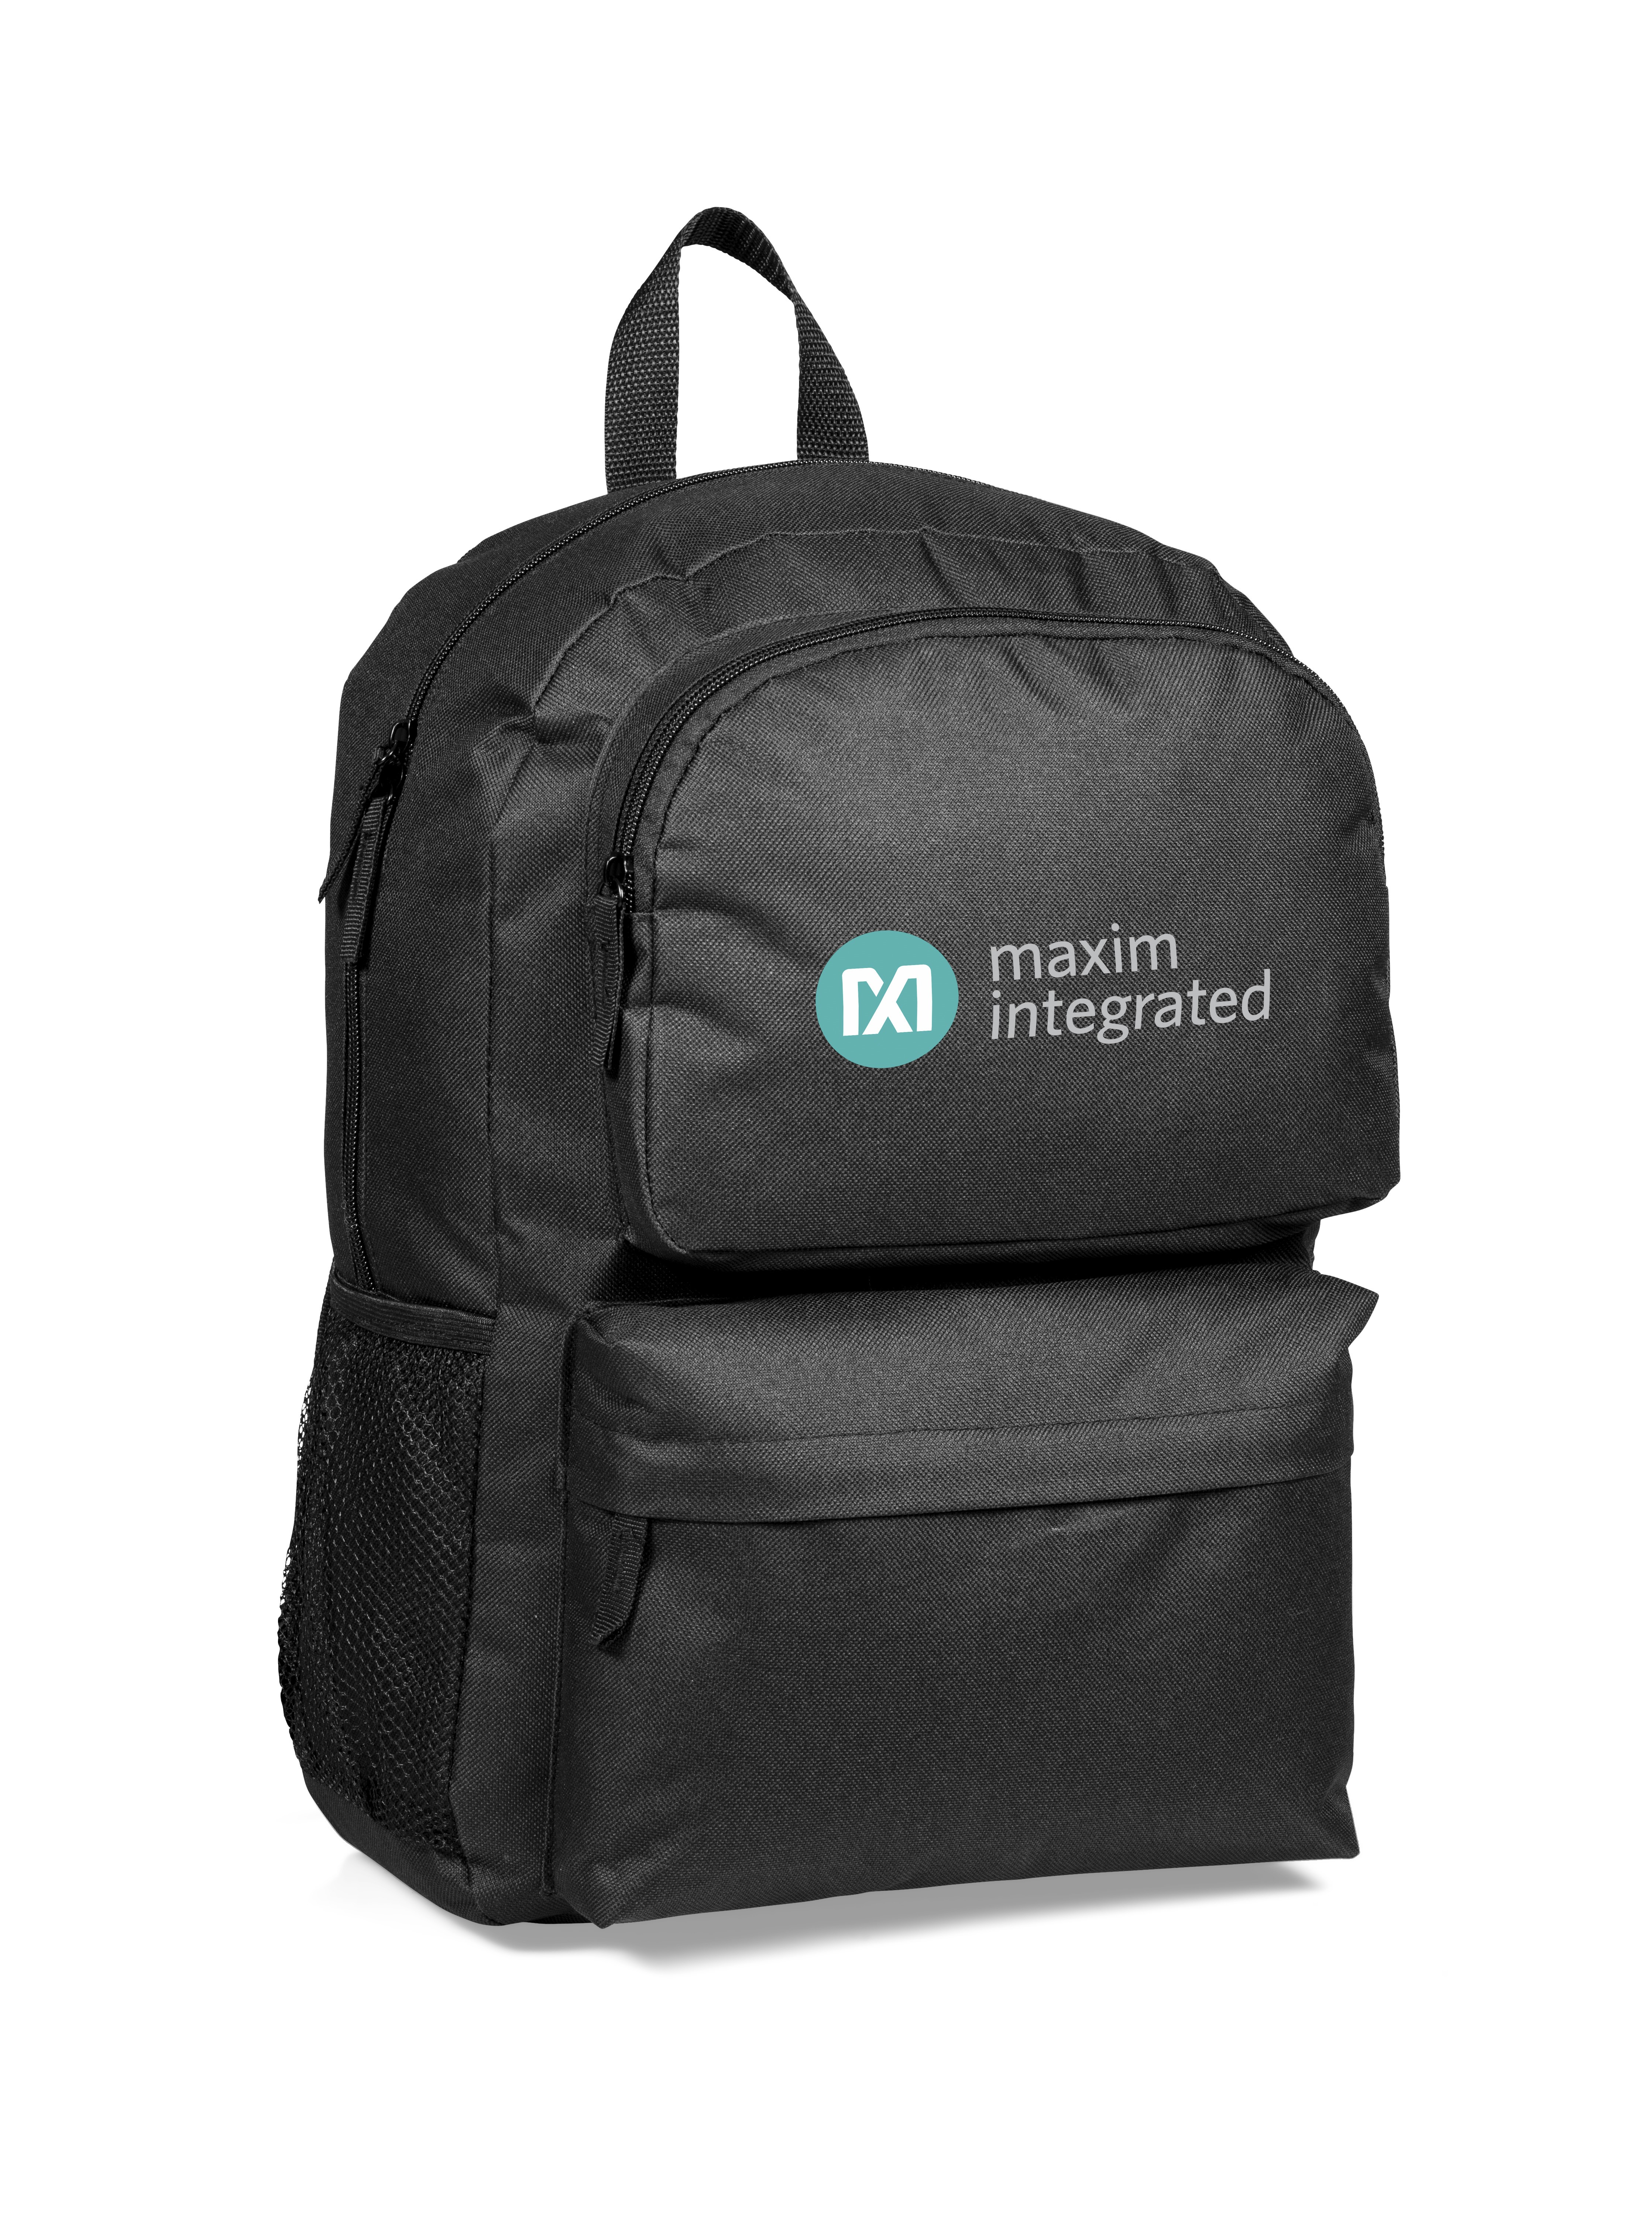 Product: Collegiate Backpack